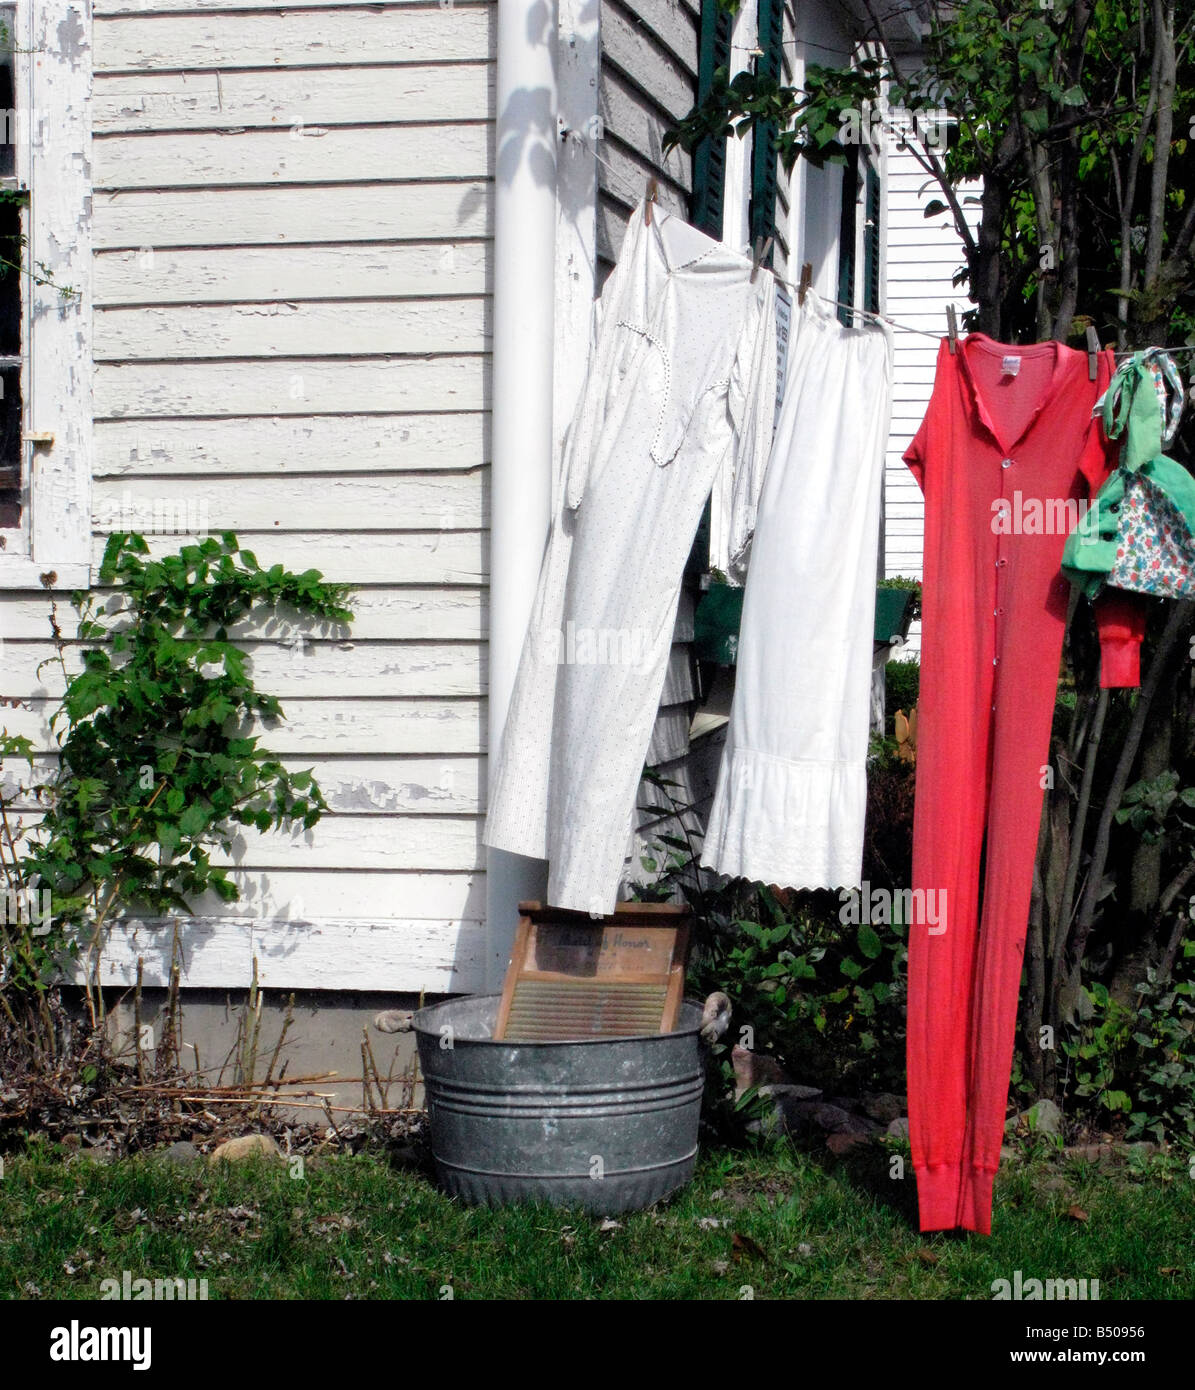 Laundry Drying On A Line Outdoors Stock Photo 20290850 Alamy